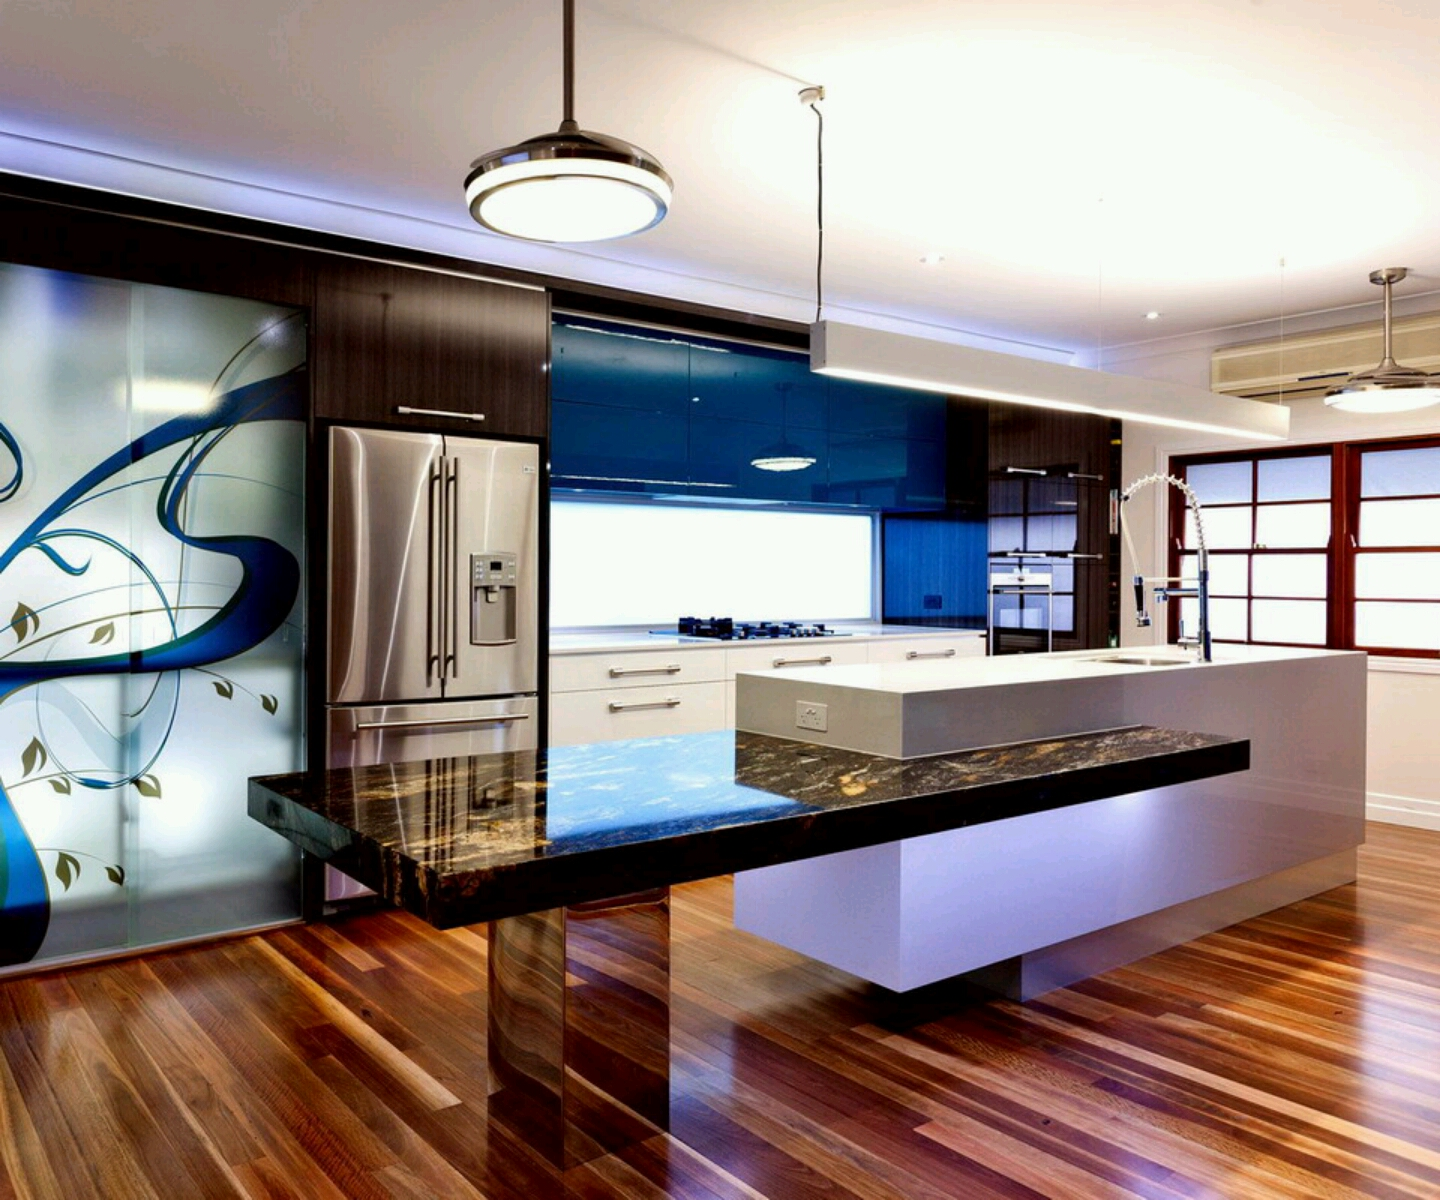 Ultra modern kitchen designs ideas new home designs for Modern kitchen images